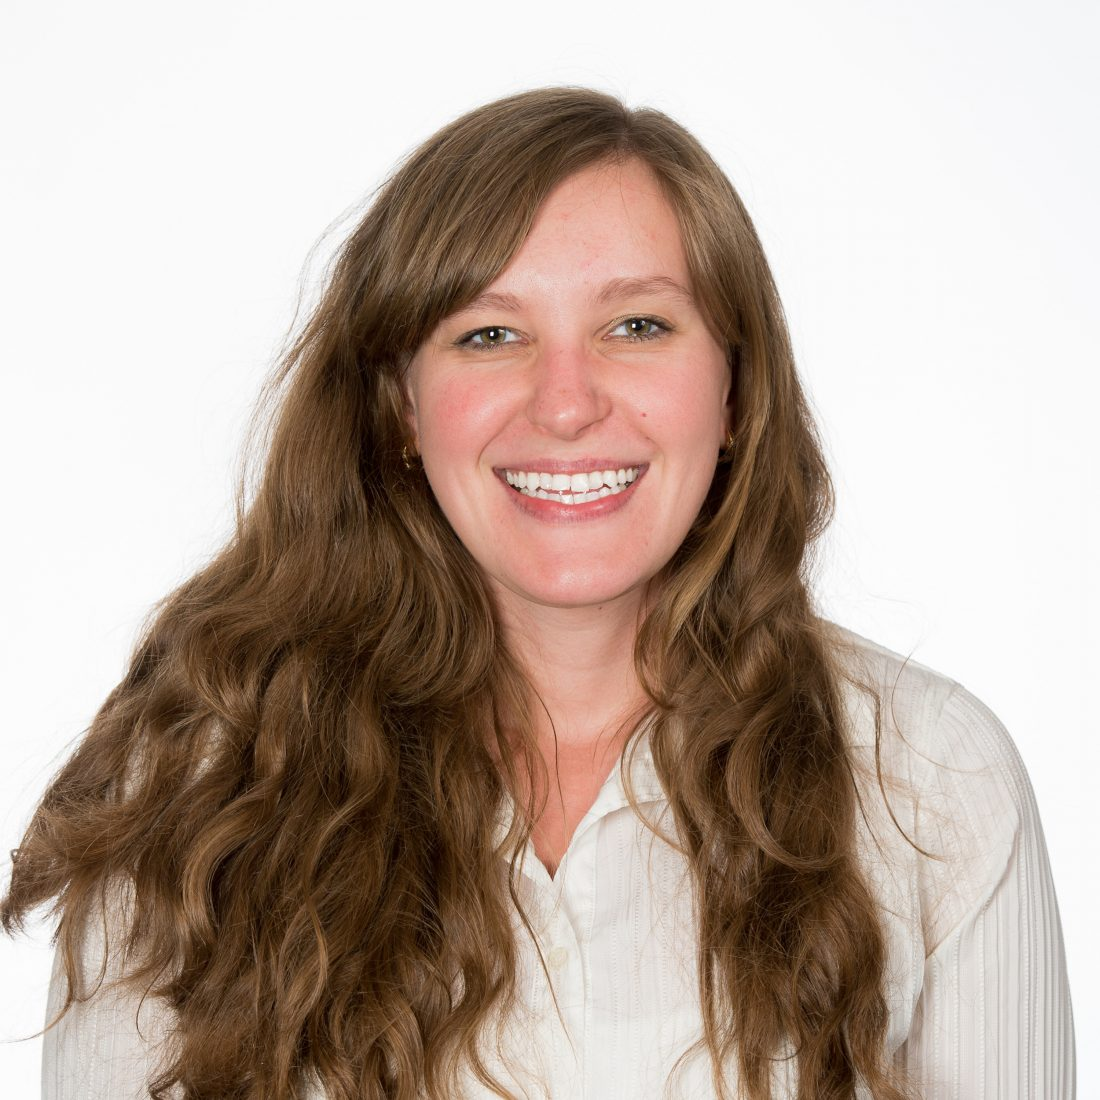 A close-up color photo of Dr. Alesia Prakapenka, smiling with full-teeth and long, wavy brown hair against a solid background.